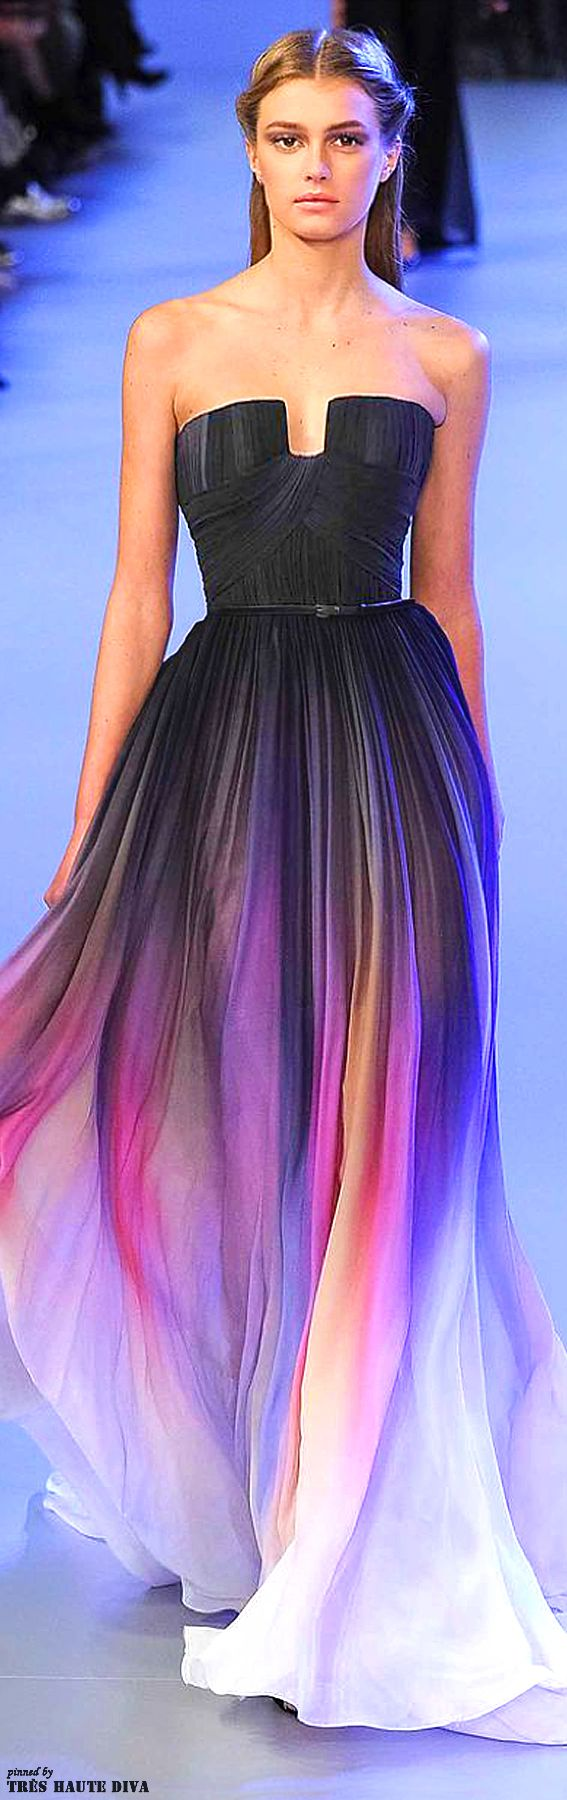 I really wish that I could come up with a design like this! I ADORE THIS OMBRE LOOK!